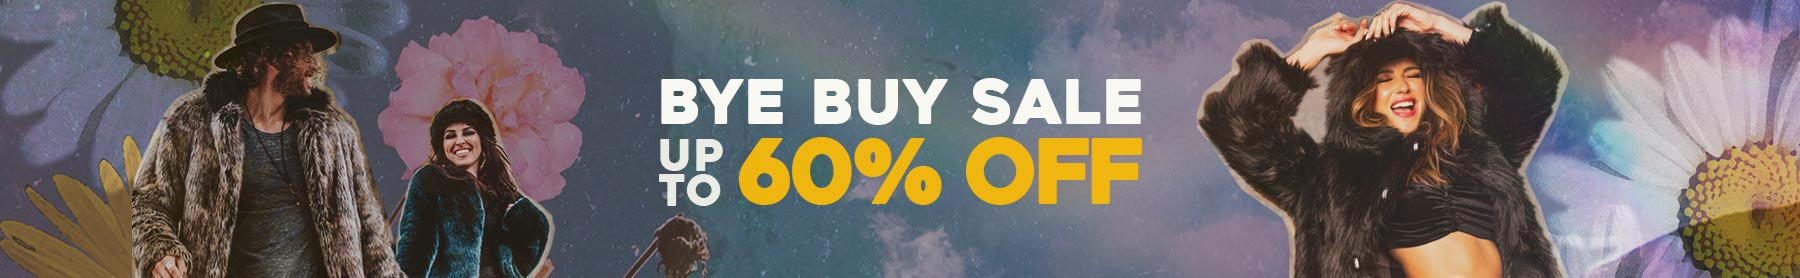 Up to 60% OFF: Bye Buy Sale